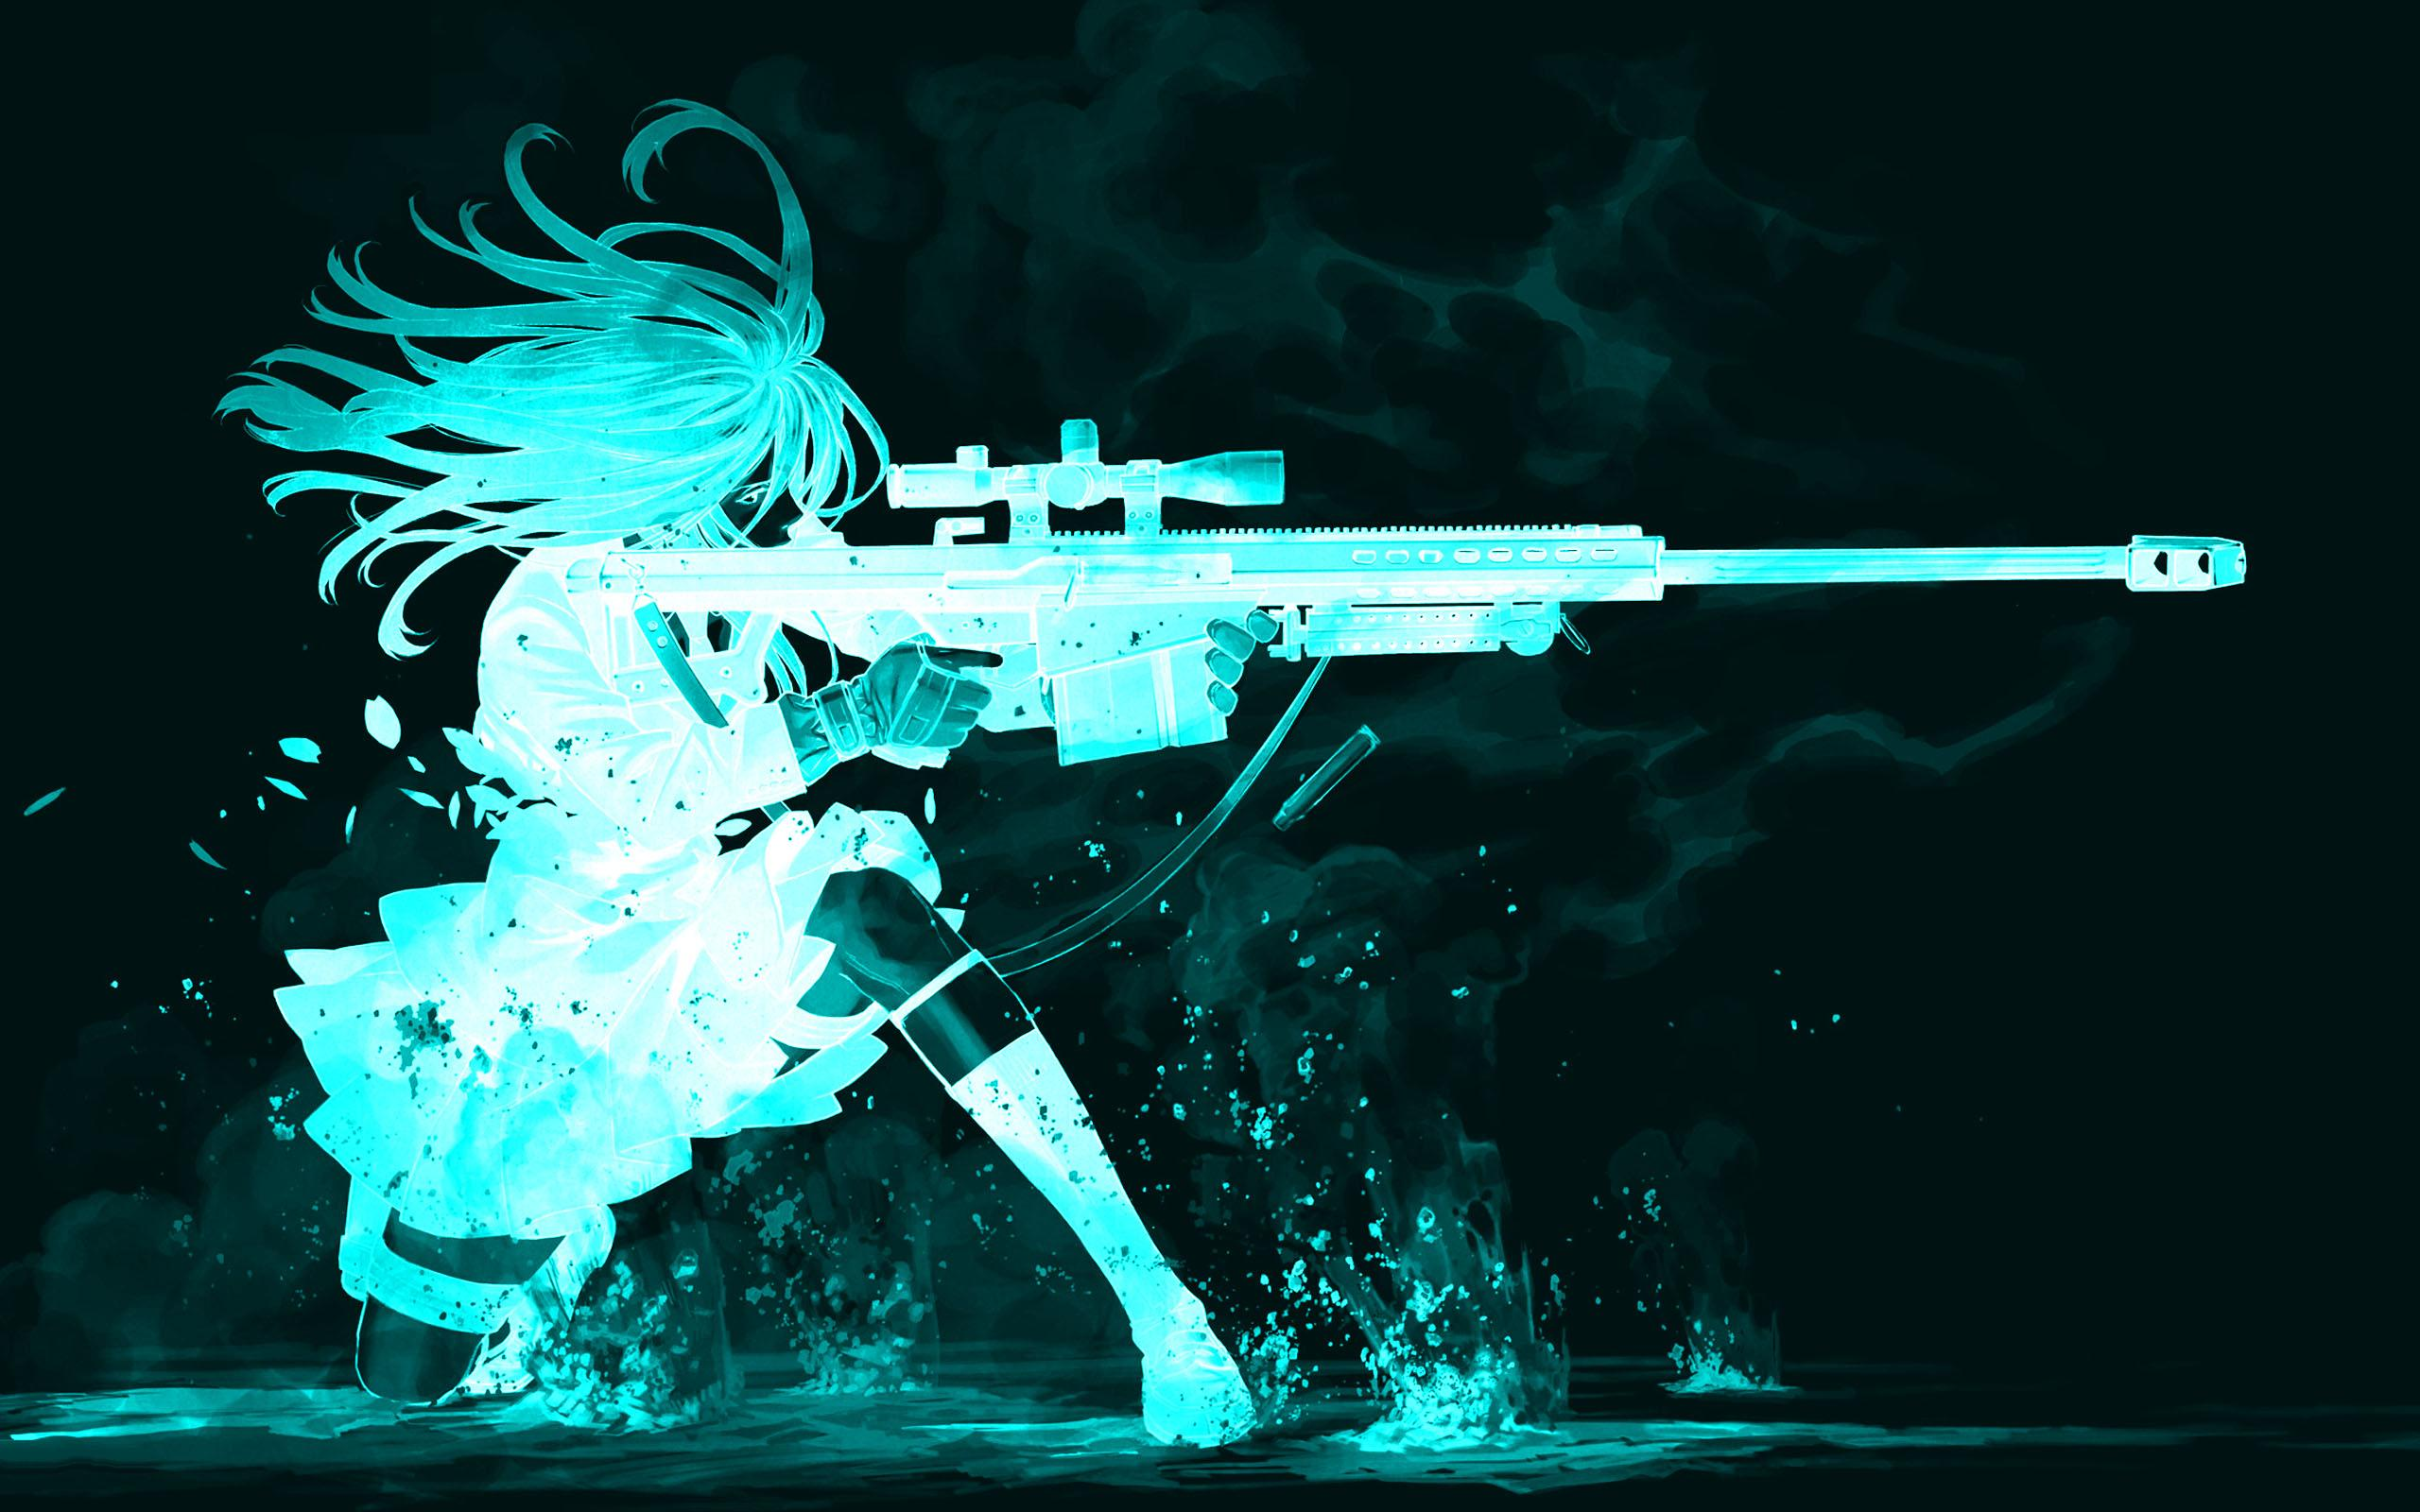 Cool Anime Wallpapers - Cool Anime Pc Backgrounds - HD Wallpaper